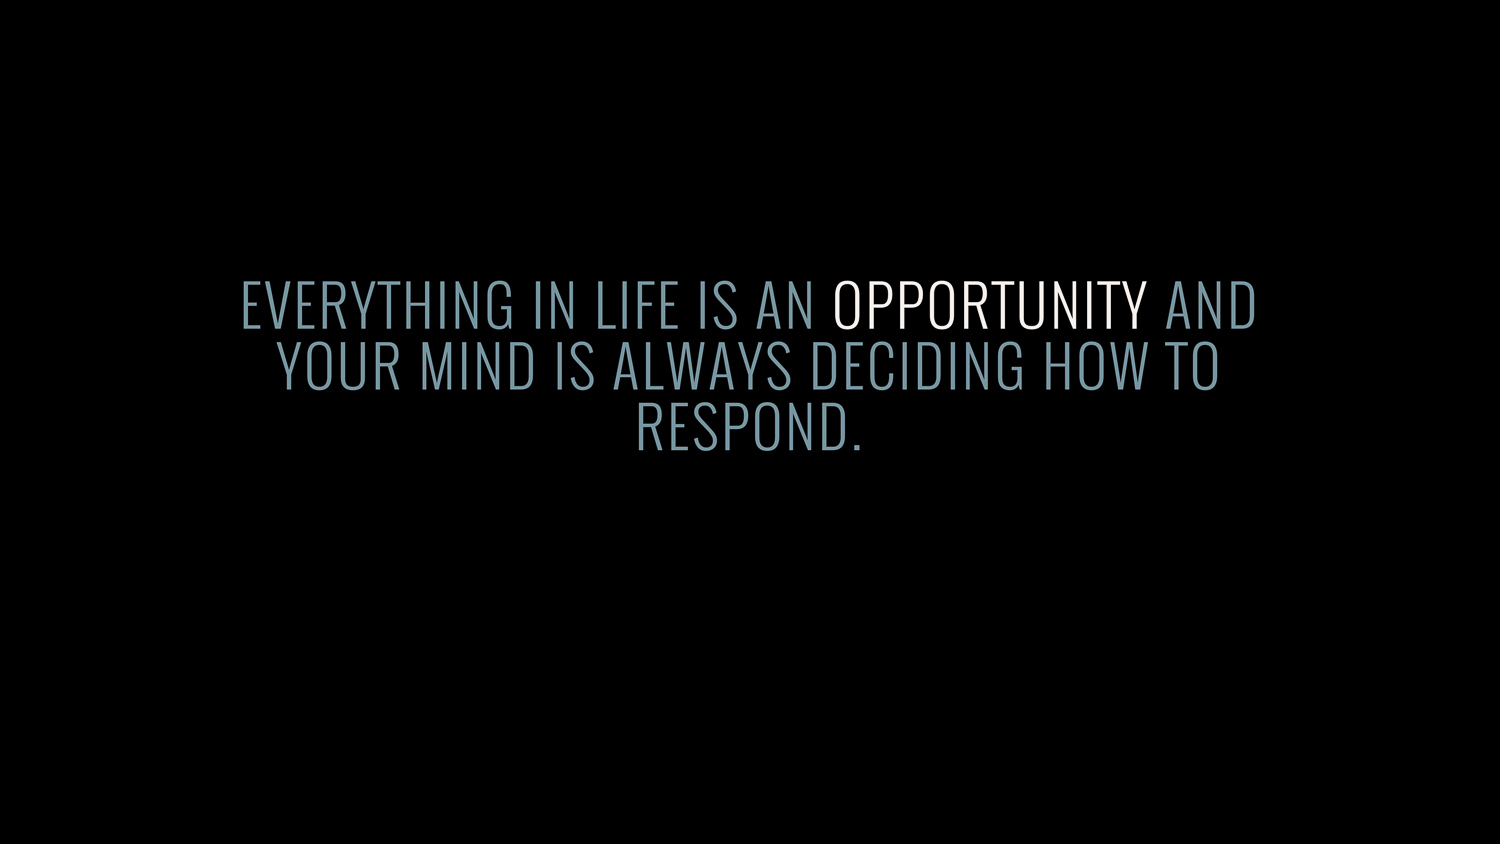 Everything in life is an opportunity and your mind is always deciding how to respond.